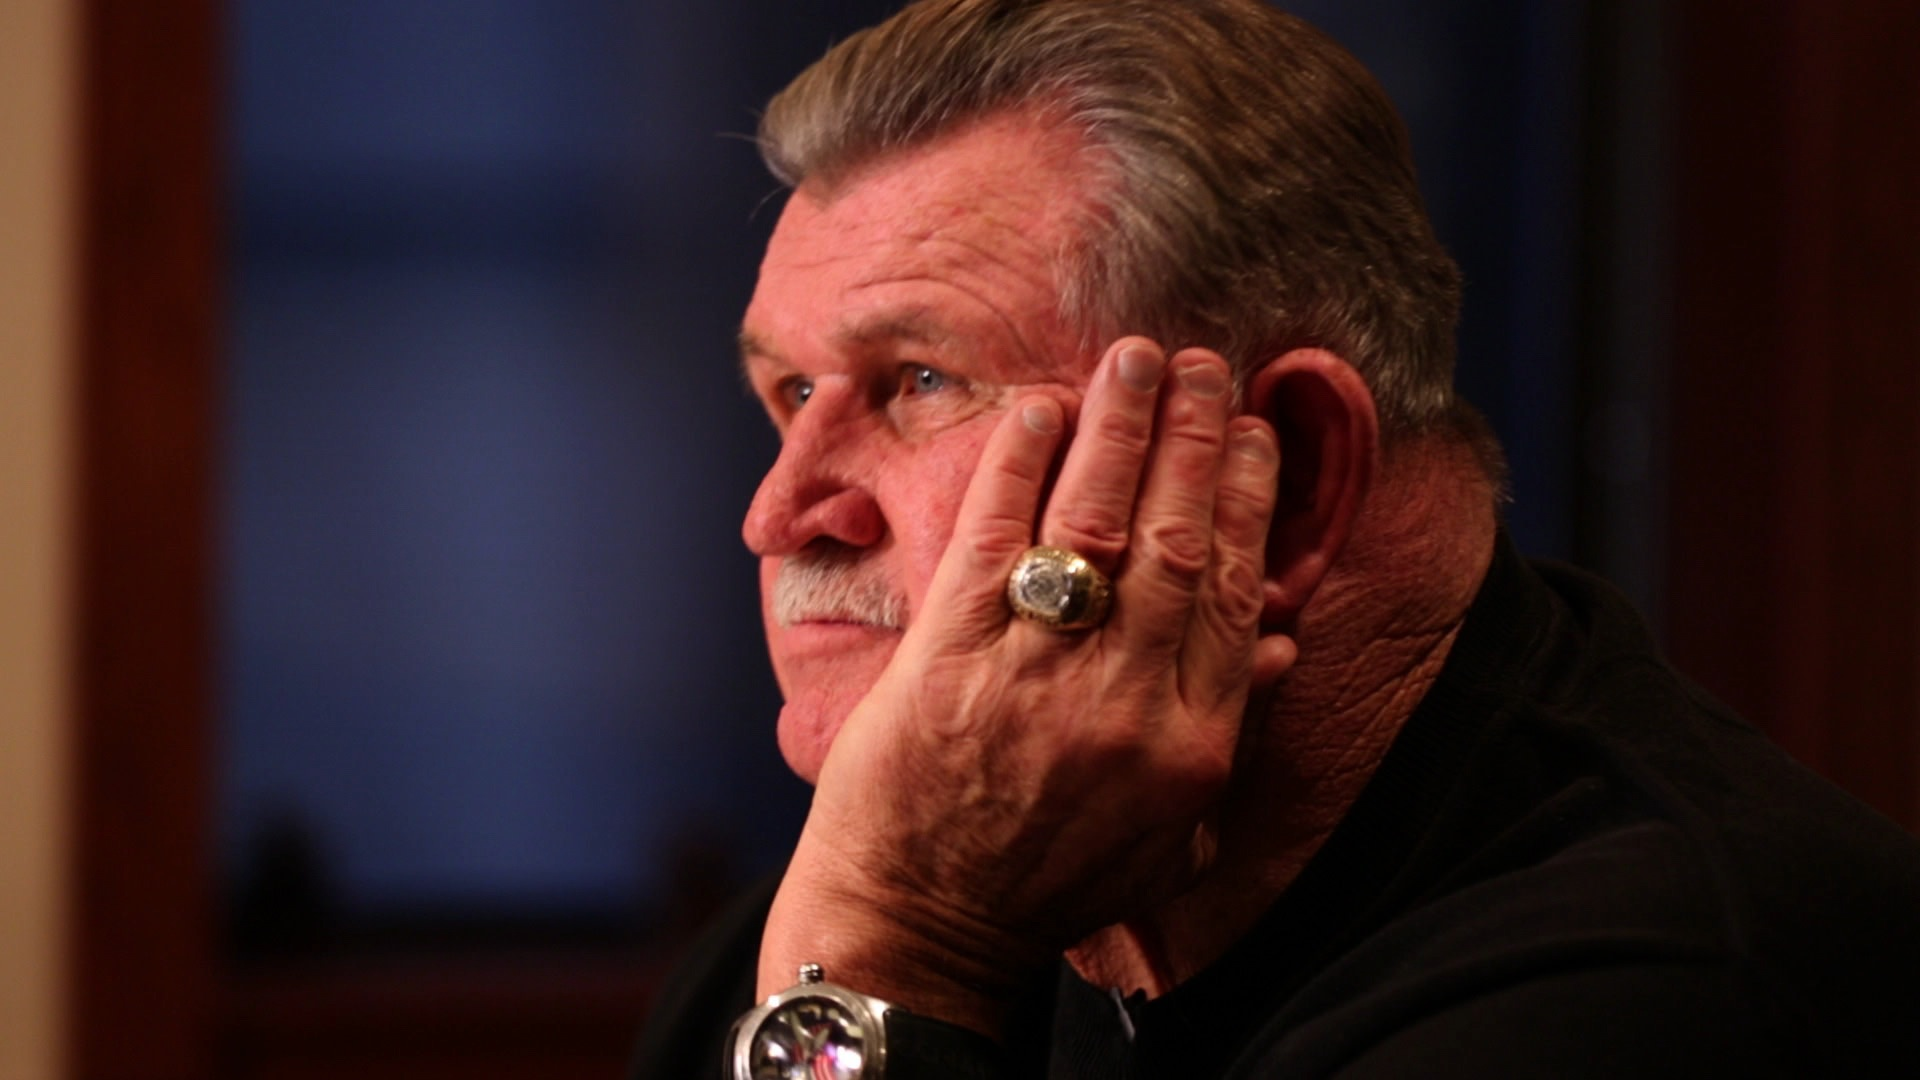 Mike Ditka, former NFL player, coach, and television commentator (November 2012)